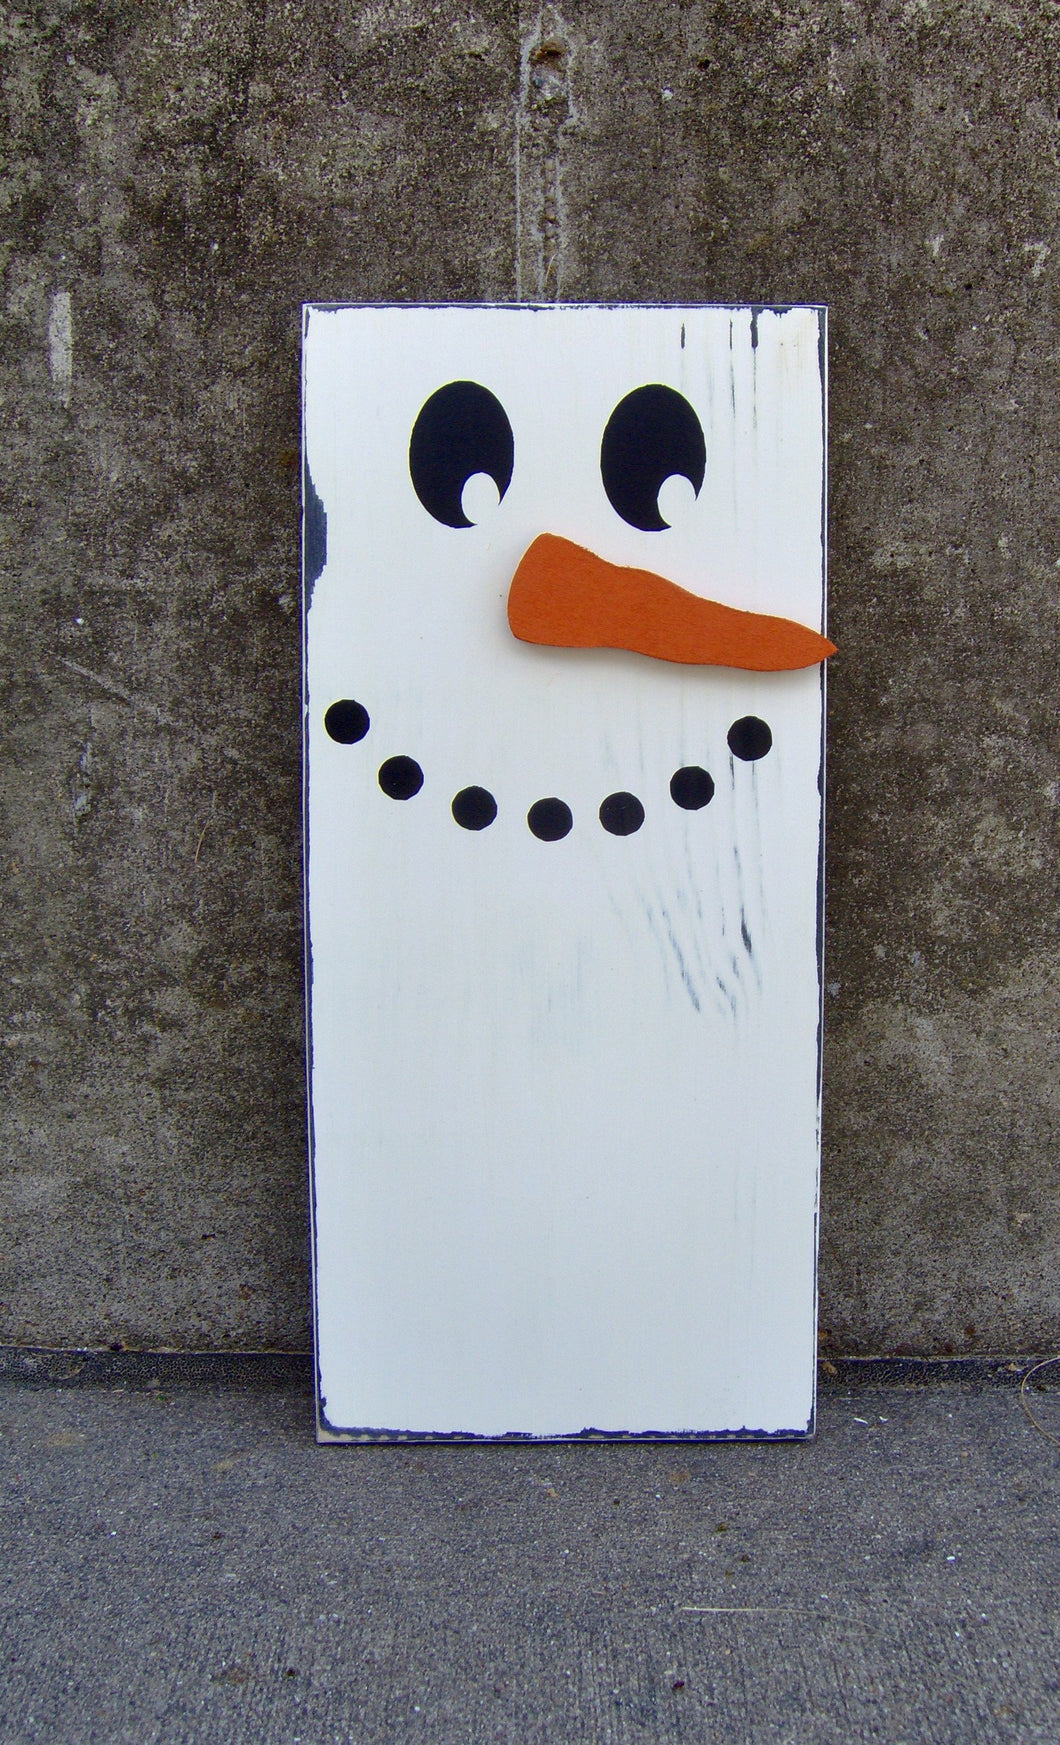 Snowman Wood Vinyl Home Decor Primitive Snowmen Decorations Farmhouse Distressed Wreath Sign Attachment Winter Decor Holiday Gifts Wall Art